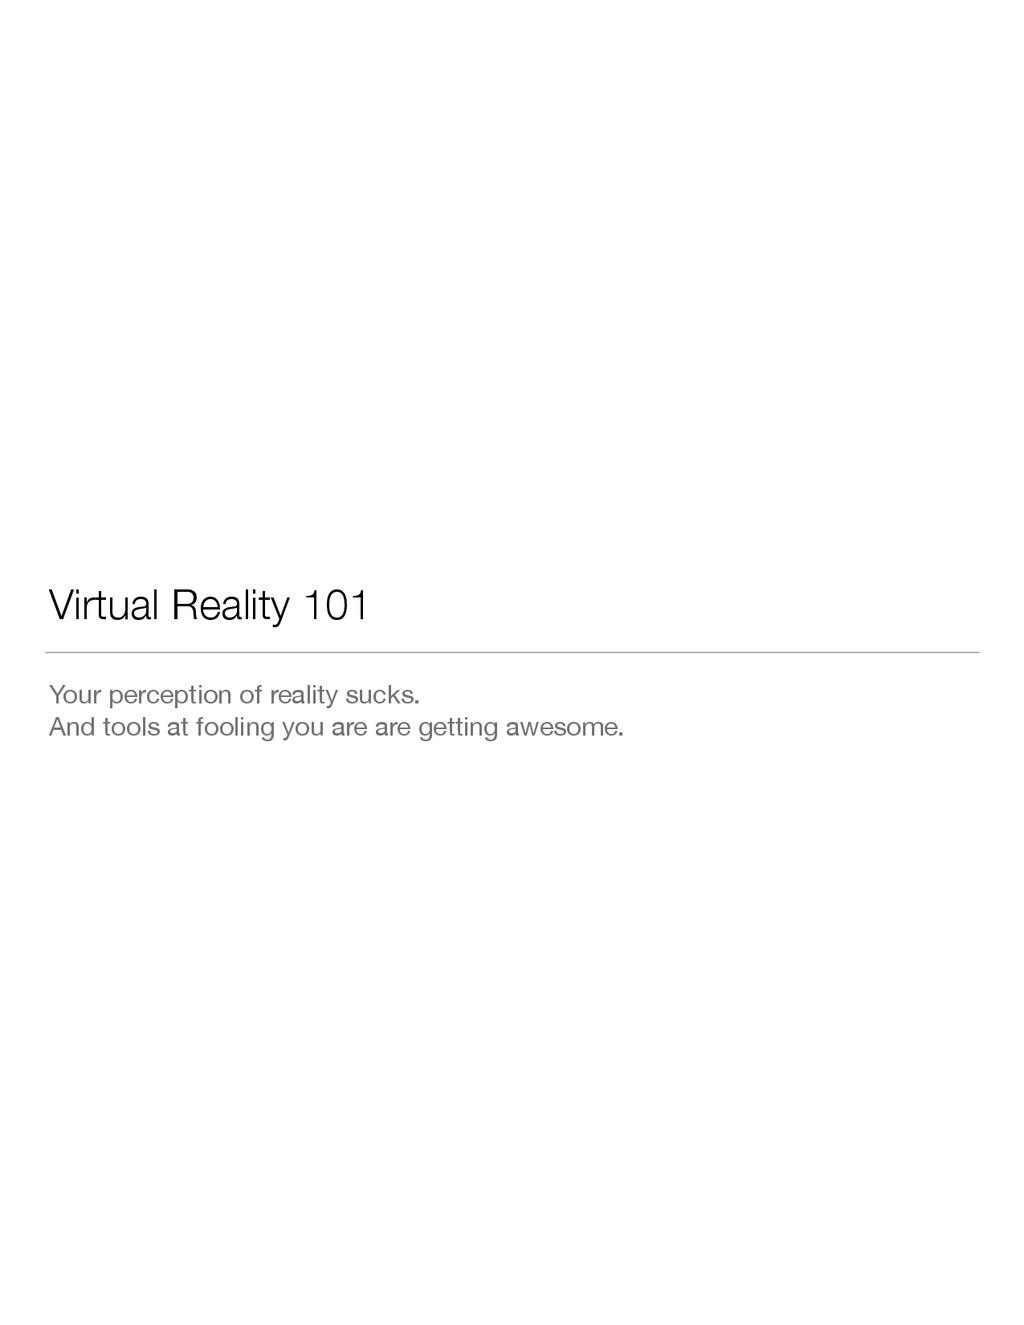 Virtual Reality 101 Your perception of reality ...